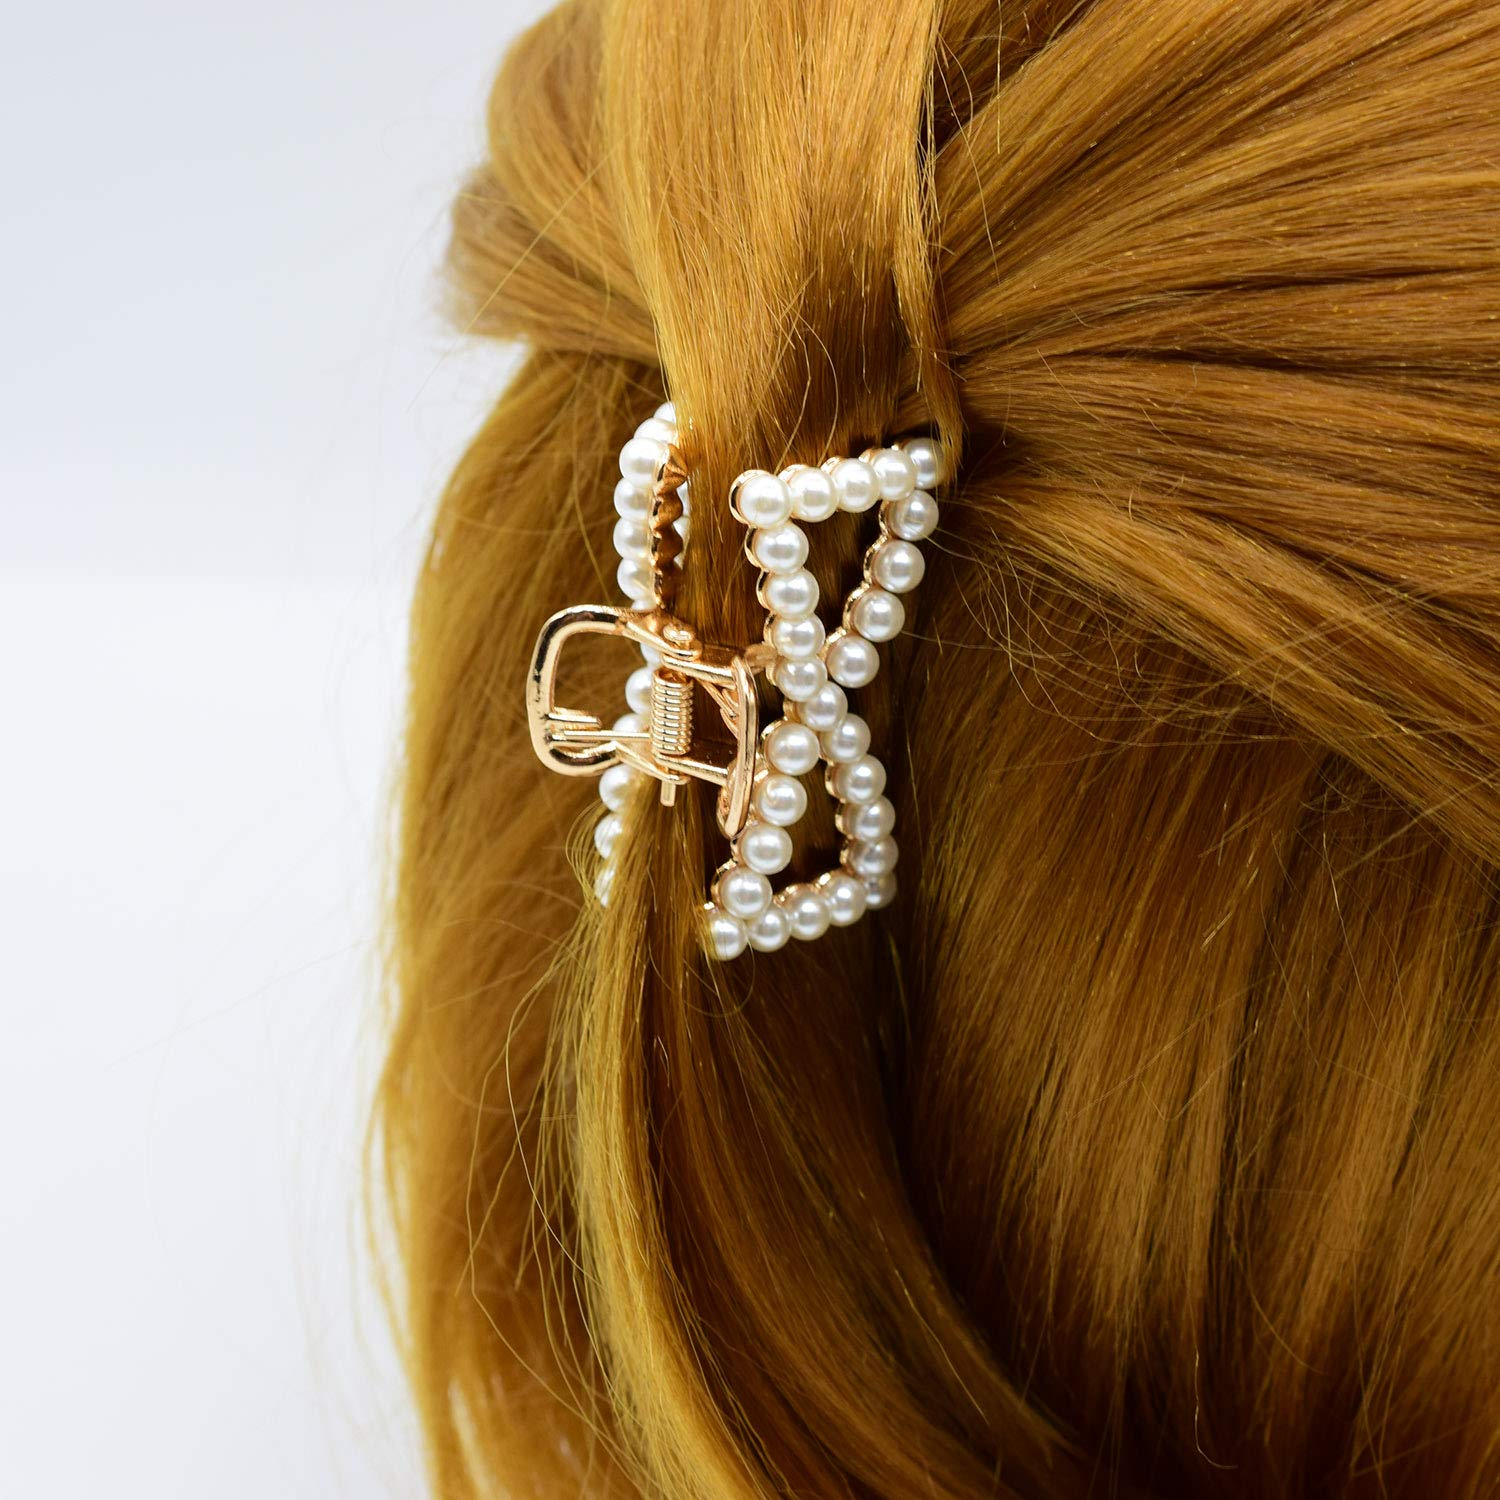 Pearl Barrette Hair Claw Clips Alloy Metal Korean Accessories for Women Girls Jewelry (Rose Gold)